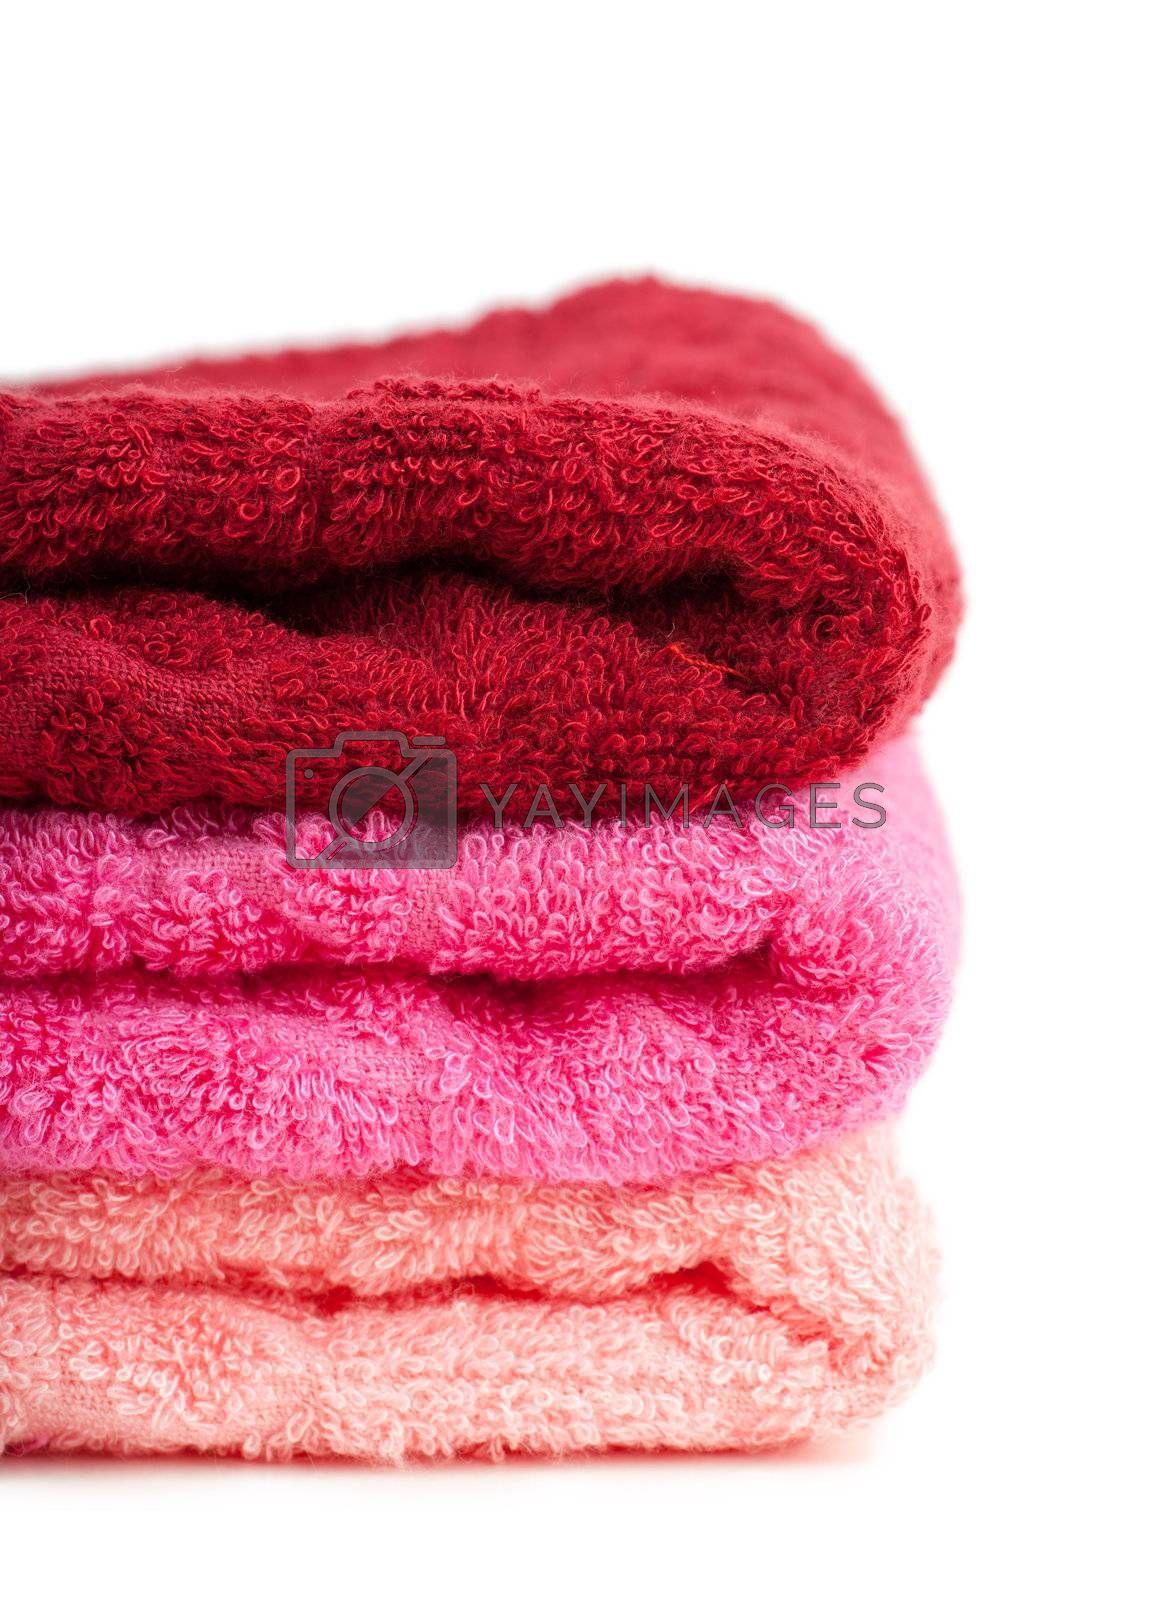 Royalty free image of Towels by AGorohov